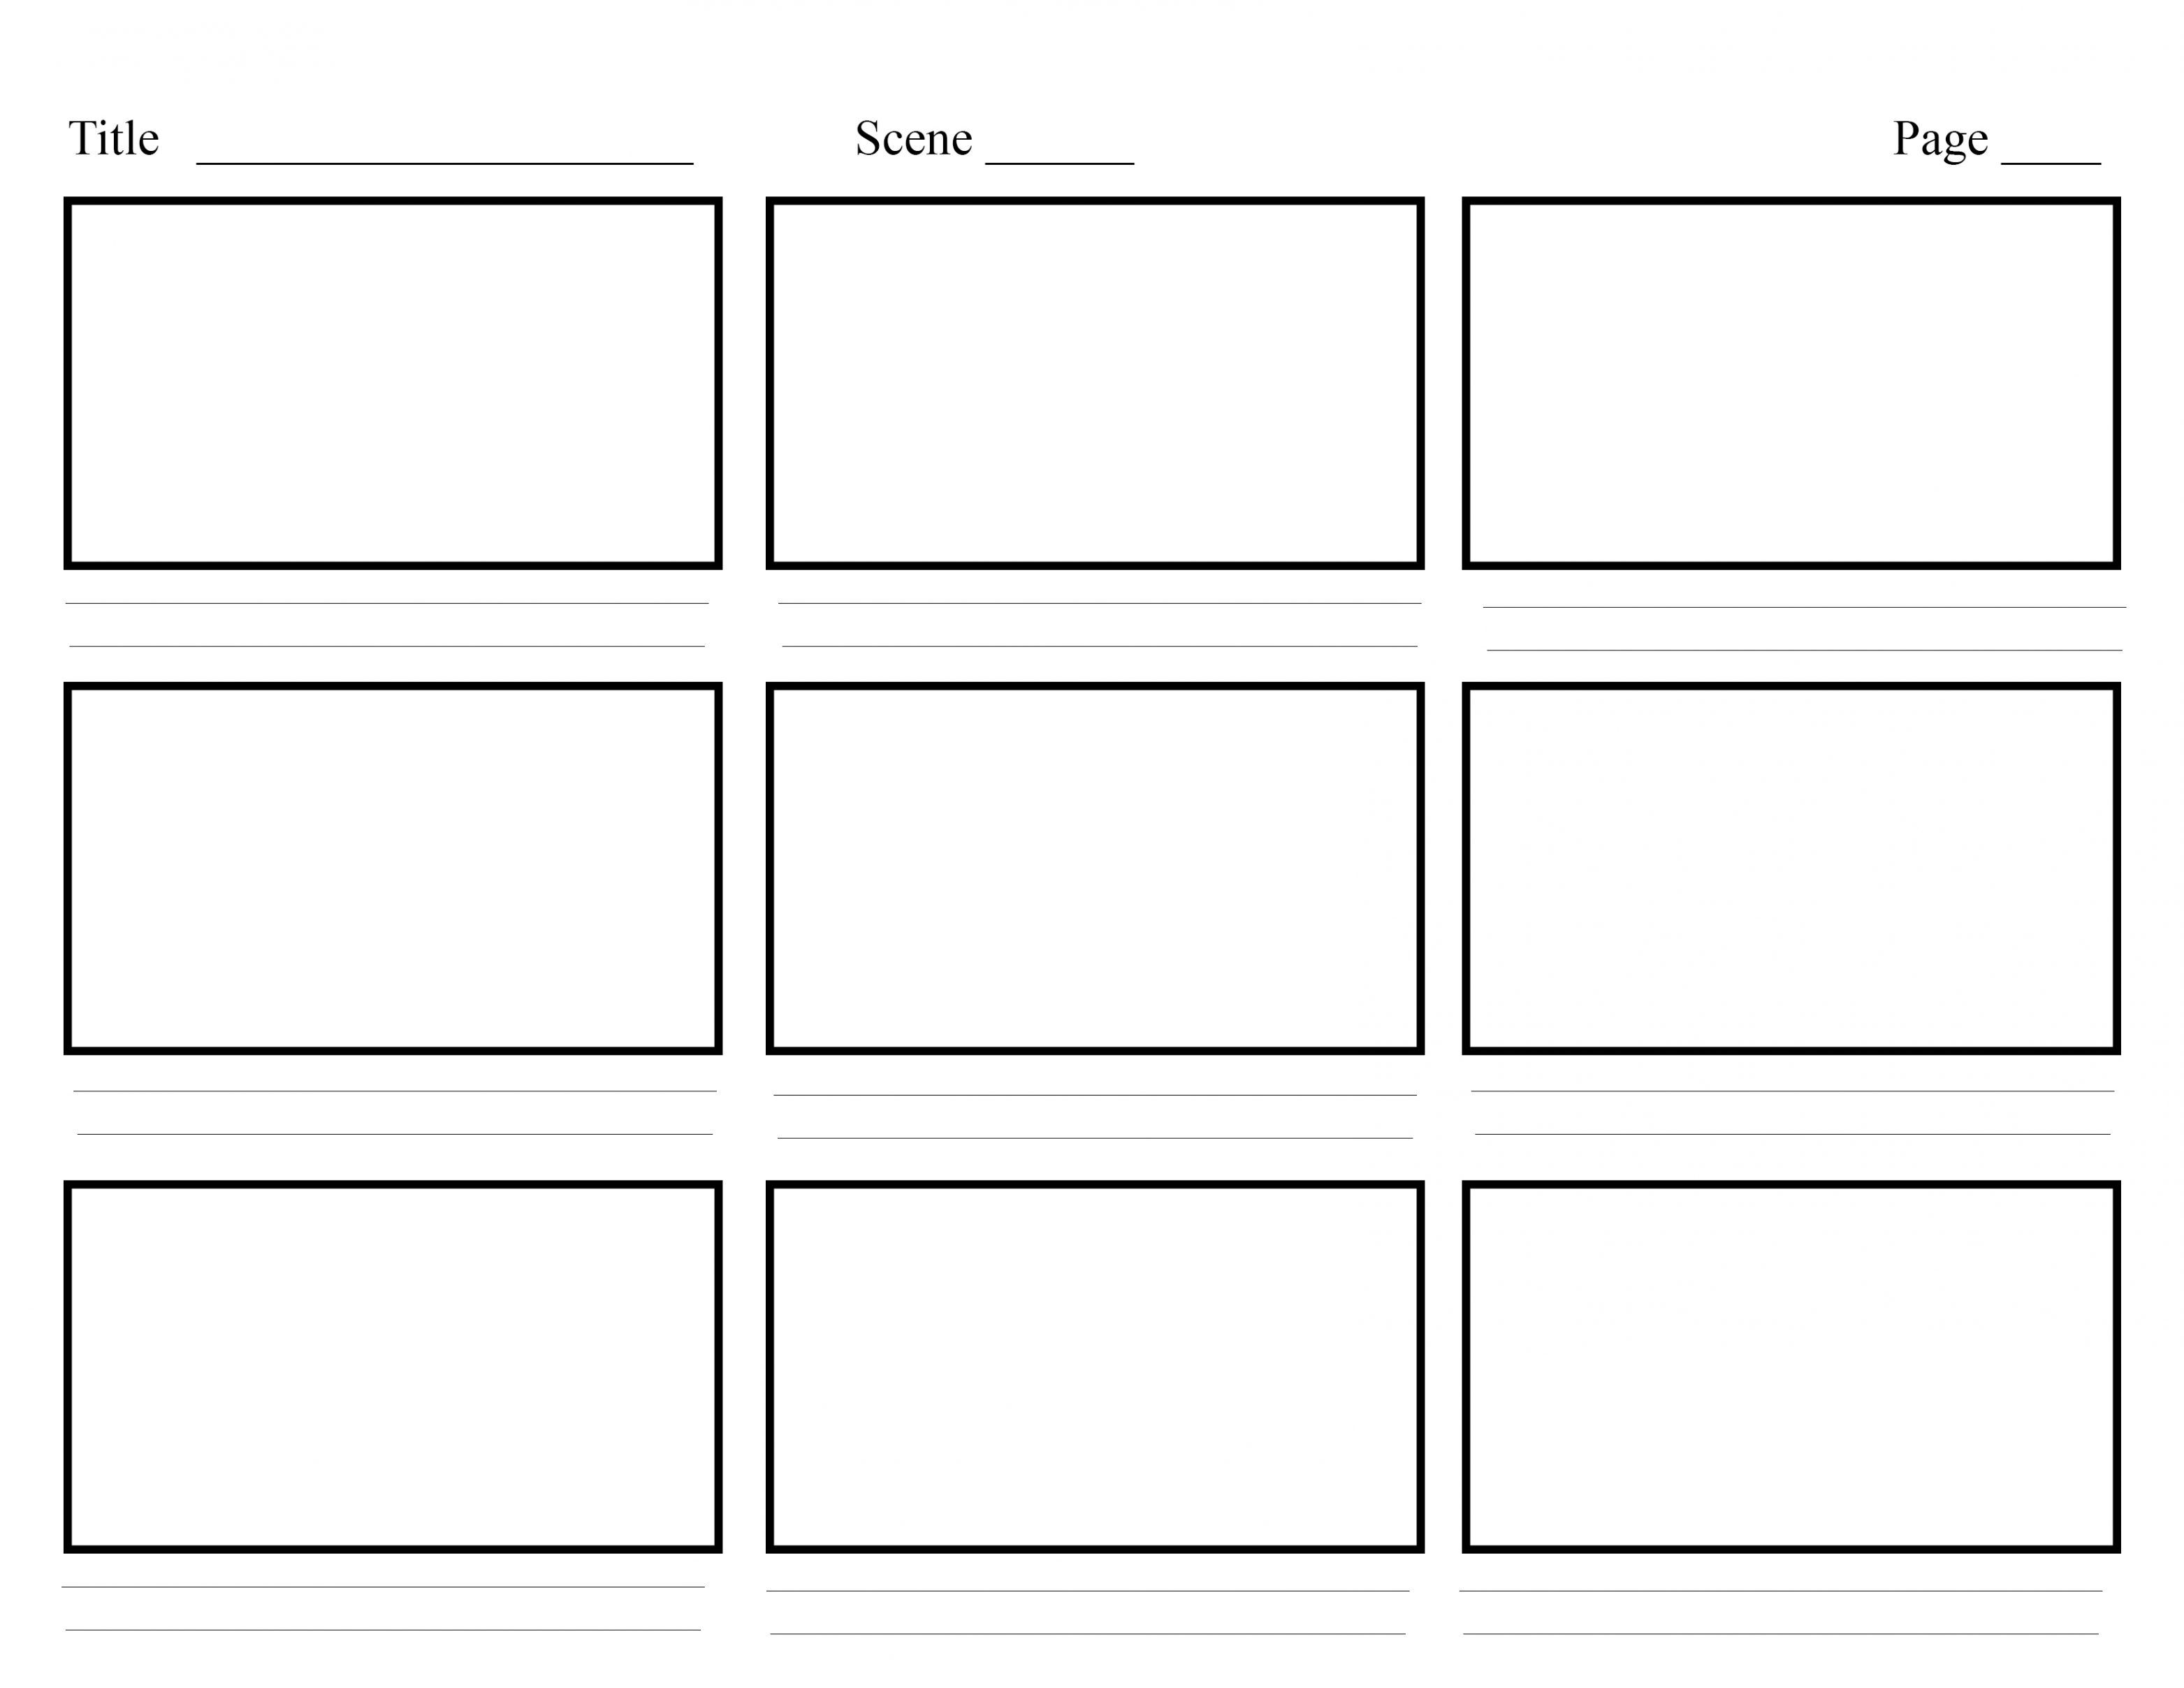 photograph relating to Storyboard Template Printable known as Storyboard Template Printable [PDF, Phrase] Discover all